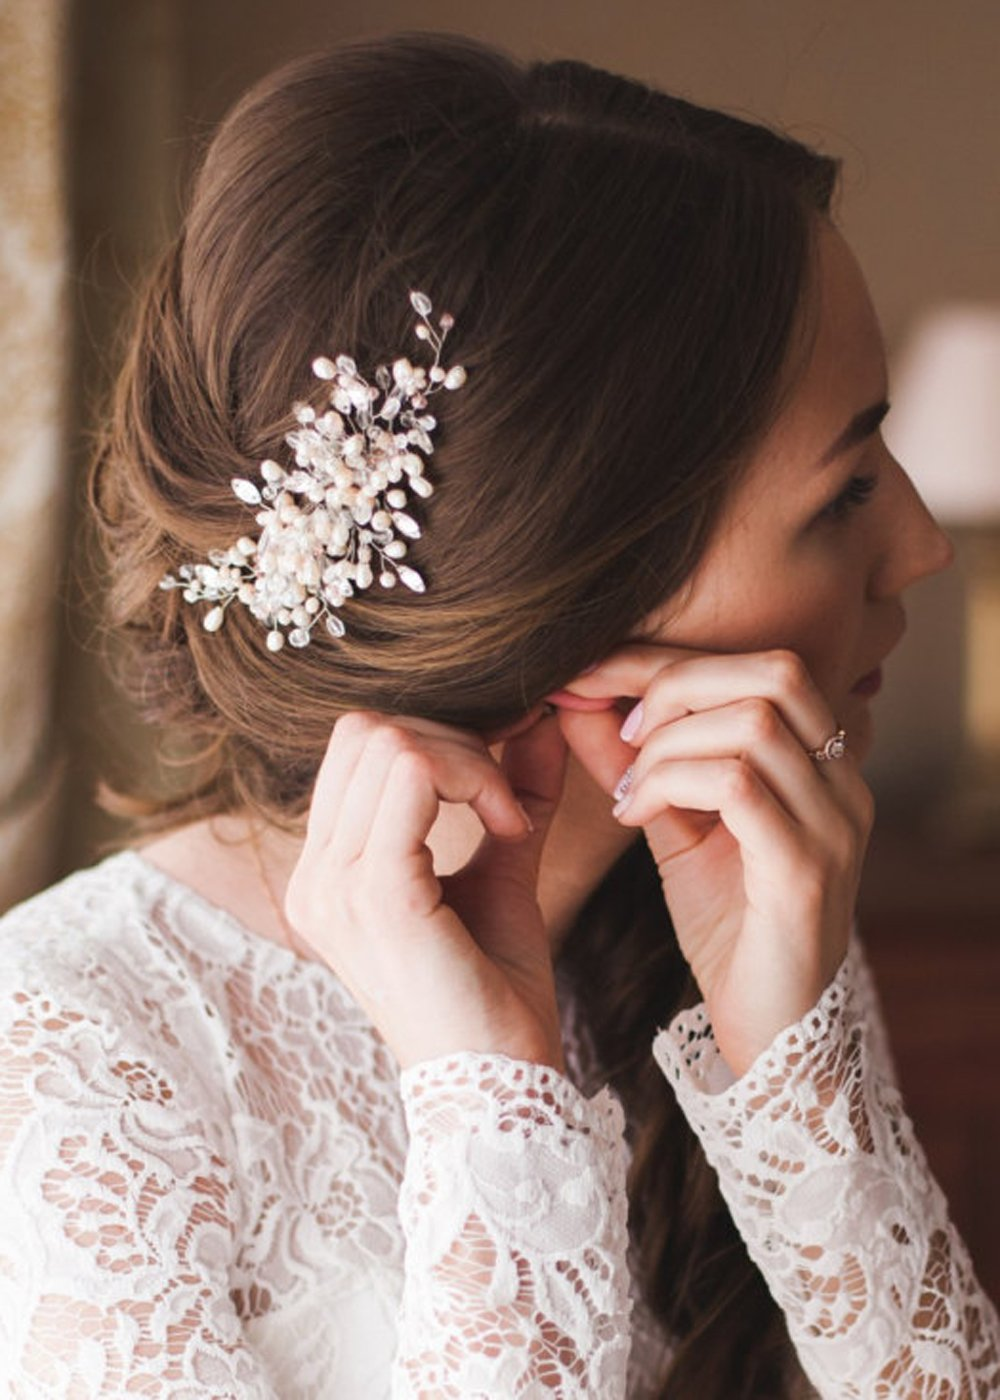 Kercisbeauty Handmade Wedding Crystal Hair Combs with Pearls for Brides Rustic Wedding Hair Accessories for Women Bridal Headpiece(Gold)